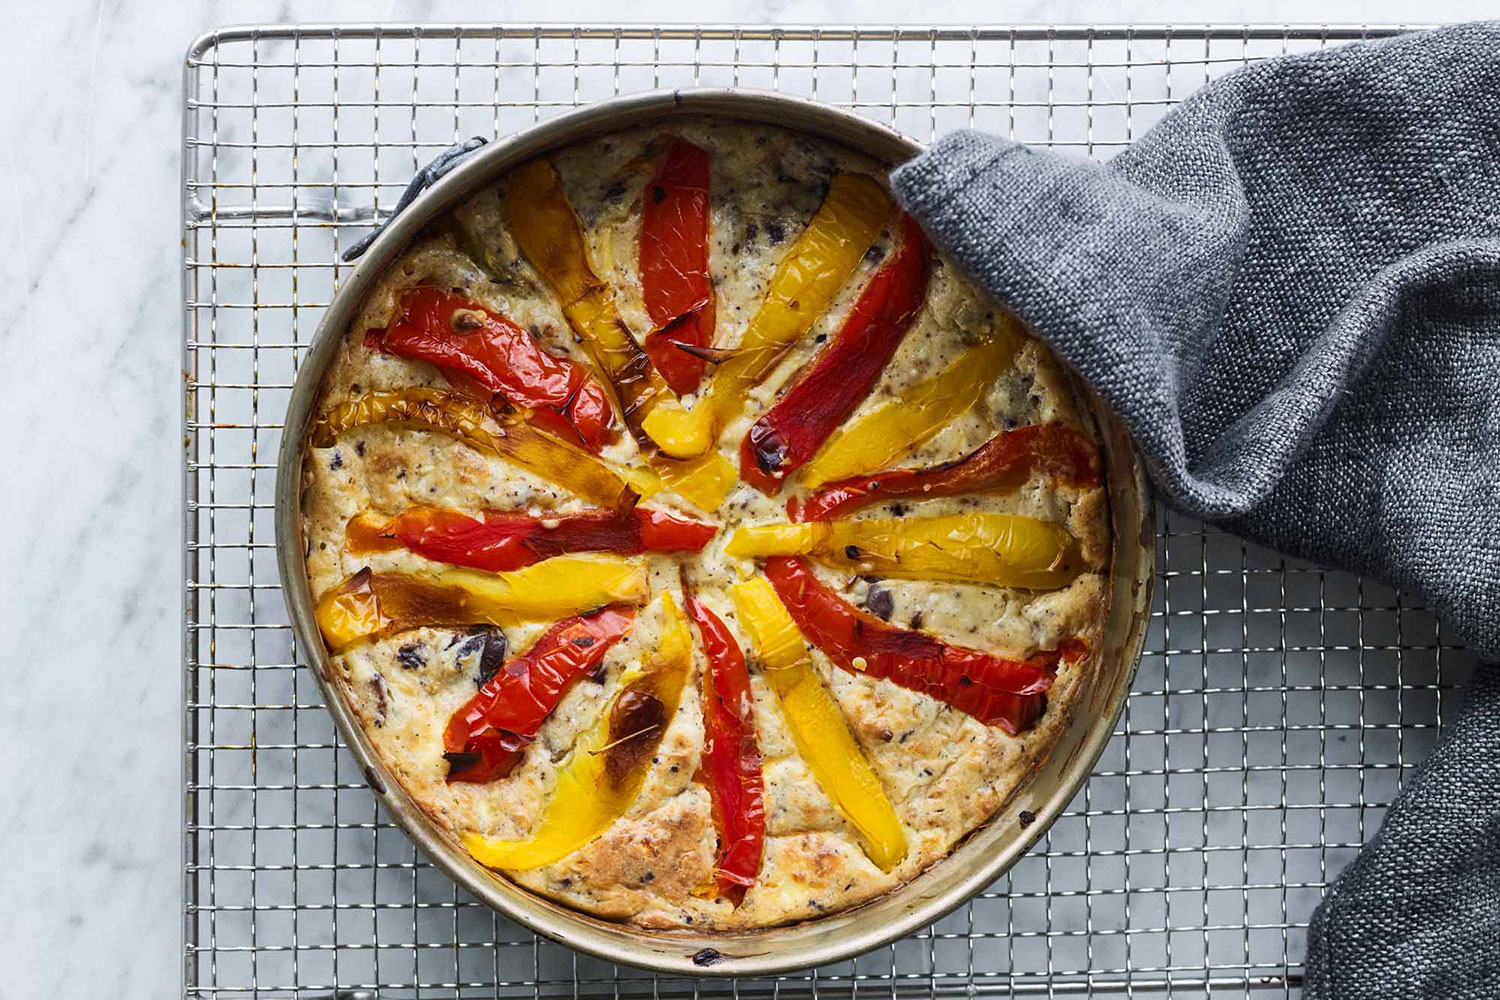 Feast on awardwinning chefs recipes with new app